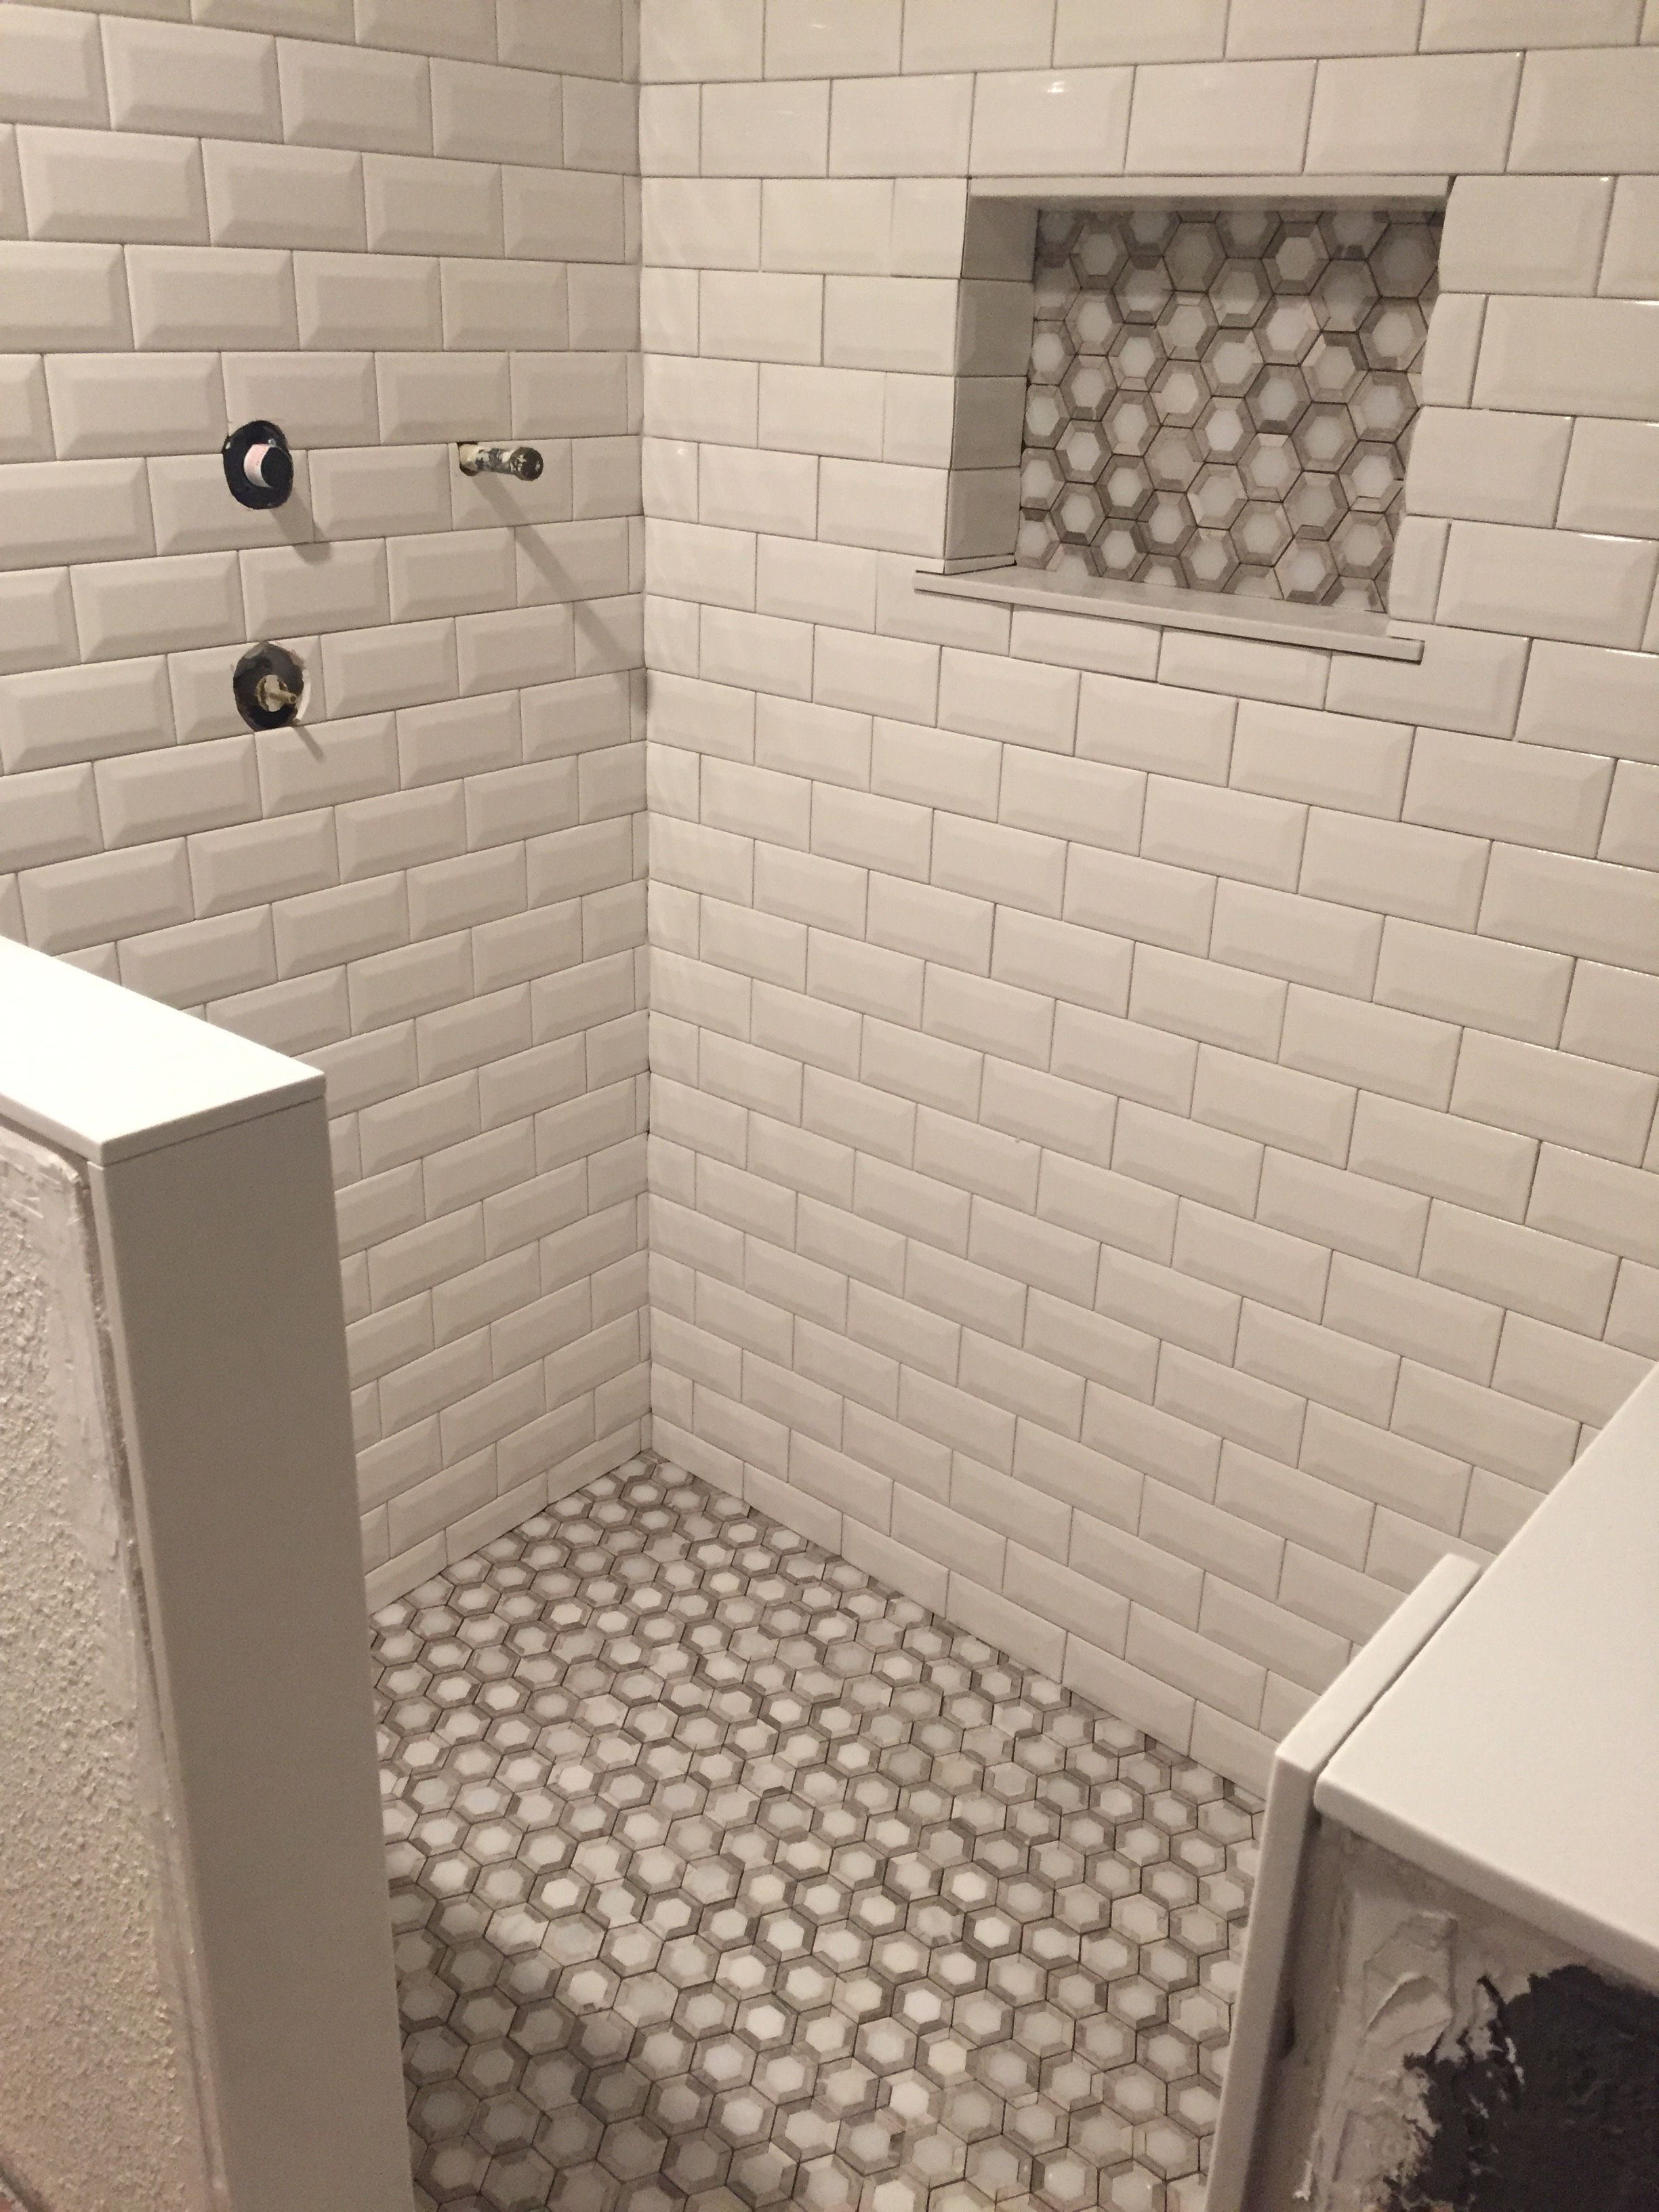 Shower Tile Install White Beveled Subway Tiles Mir Mosaic Marbella Mosaic Collection Color Gibral Small